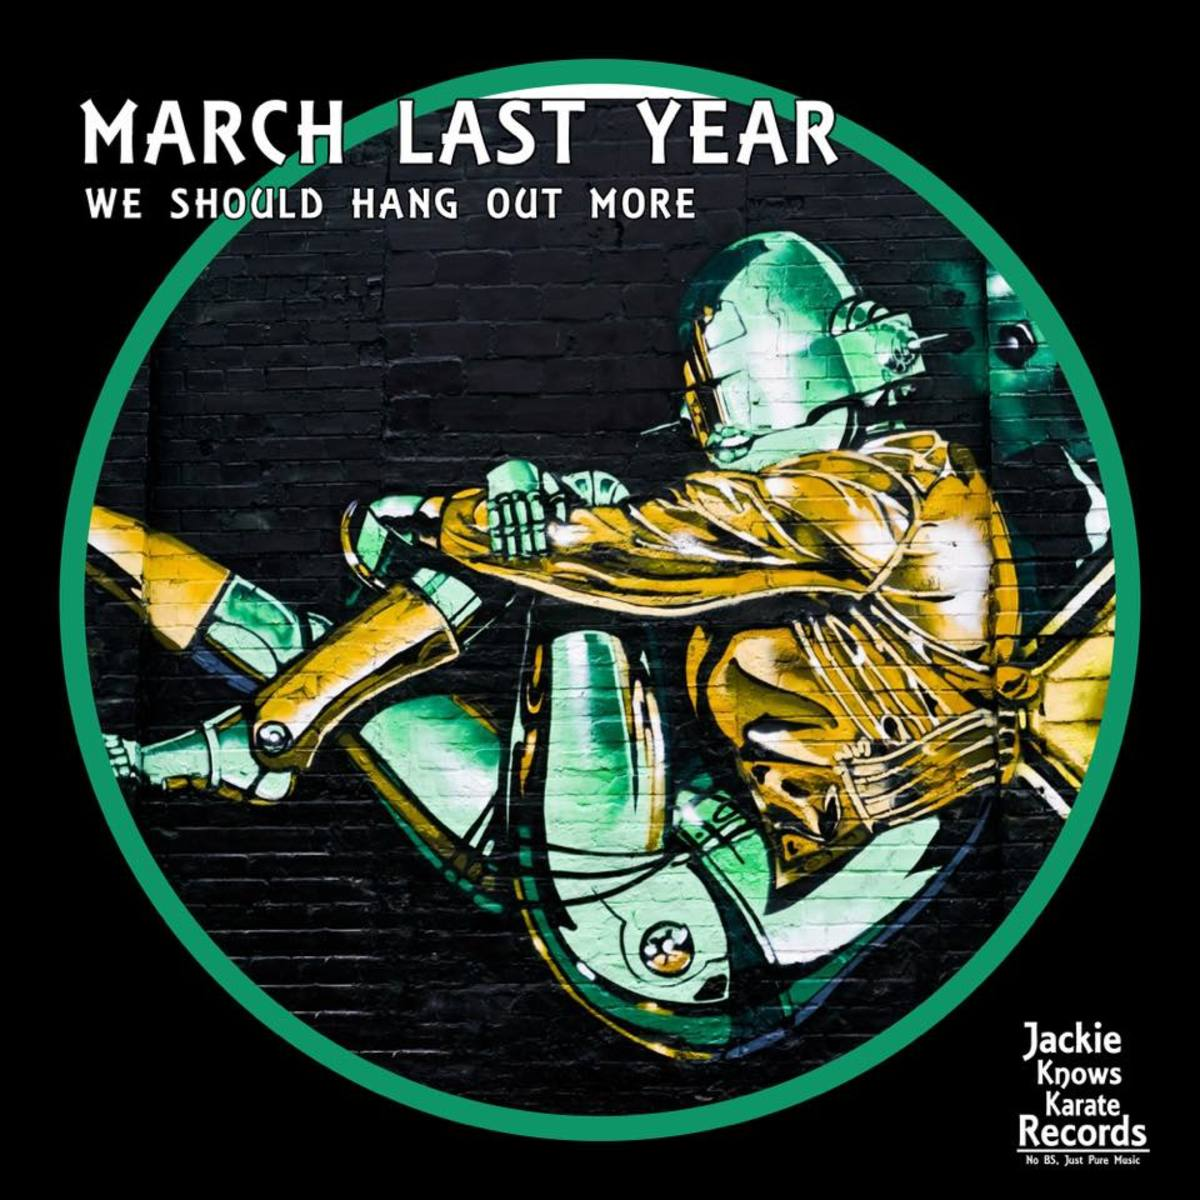 We Should Hang Out More - March Last Year